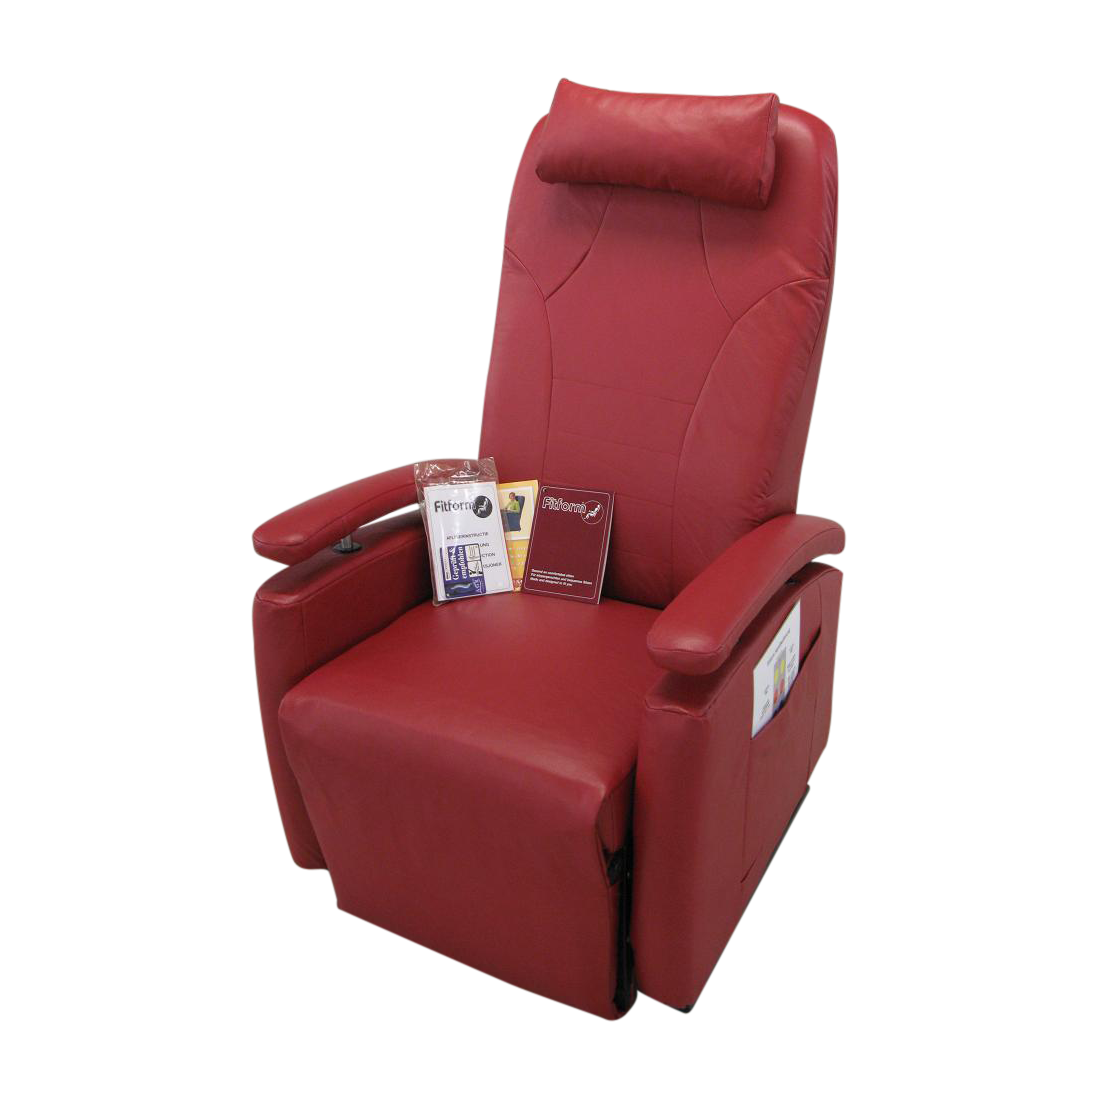 Fauteuil relax prix rouge